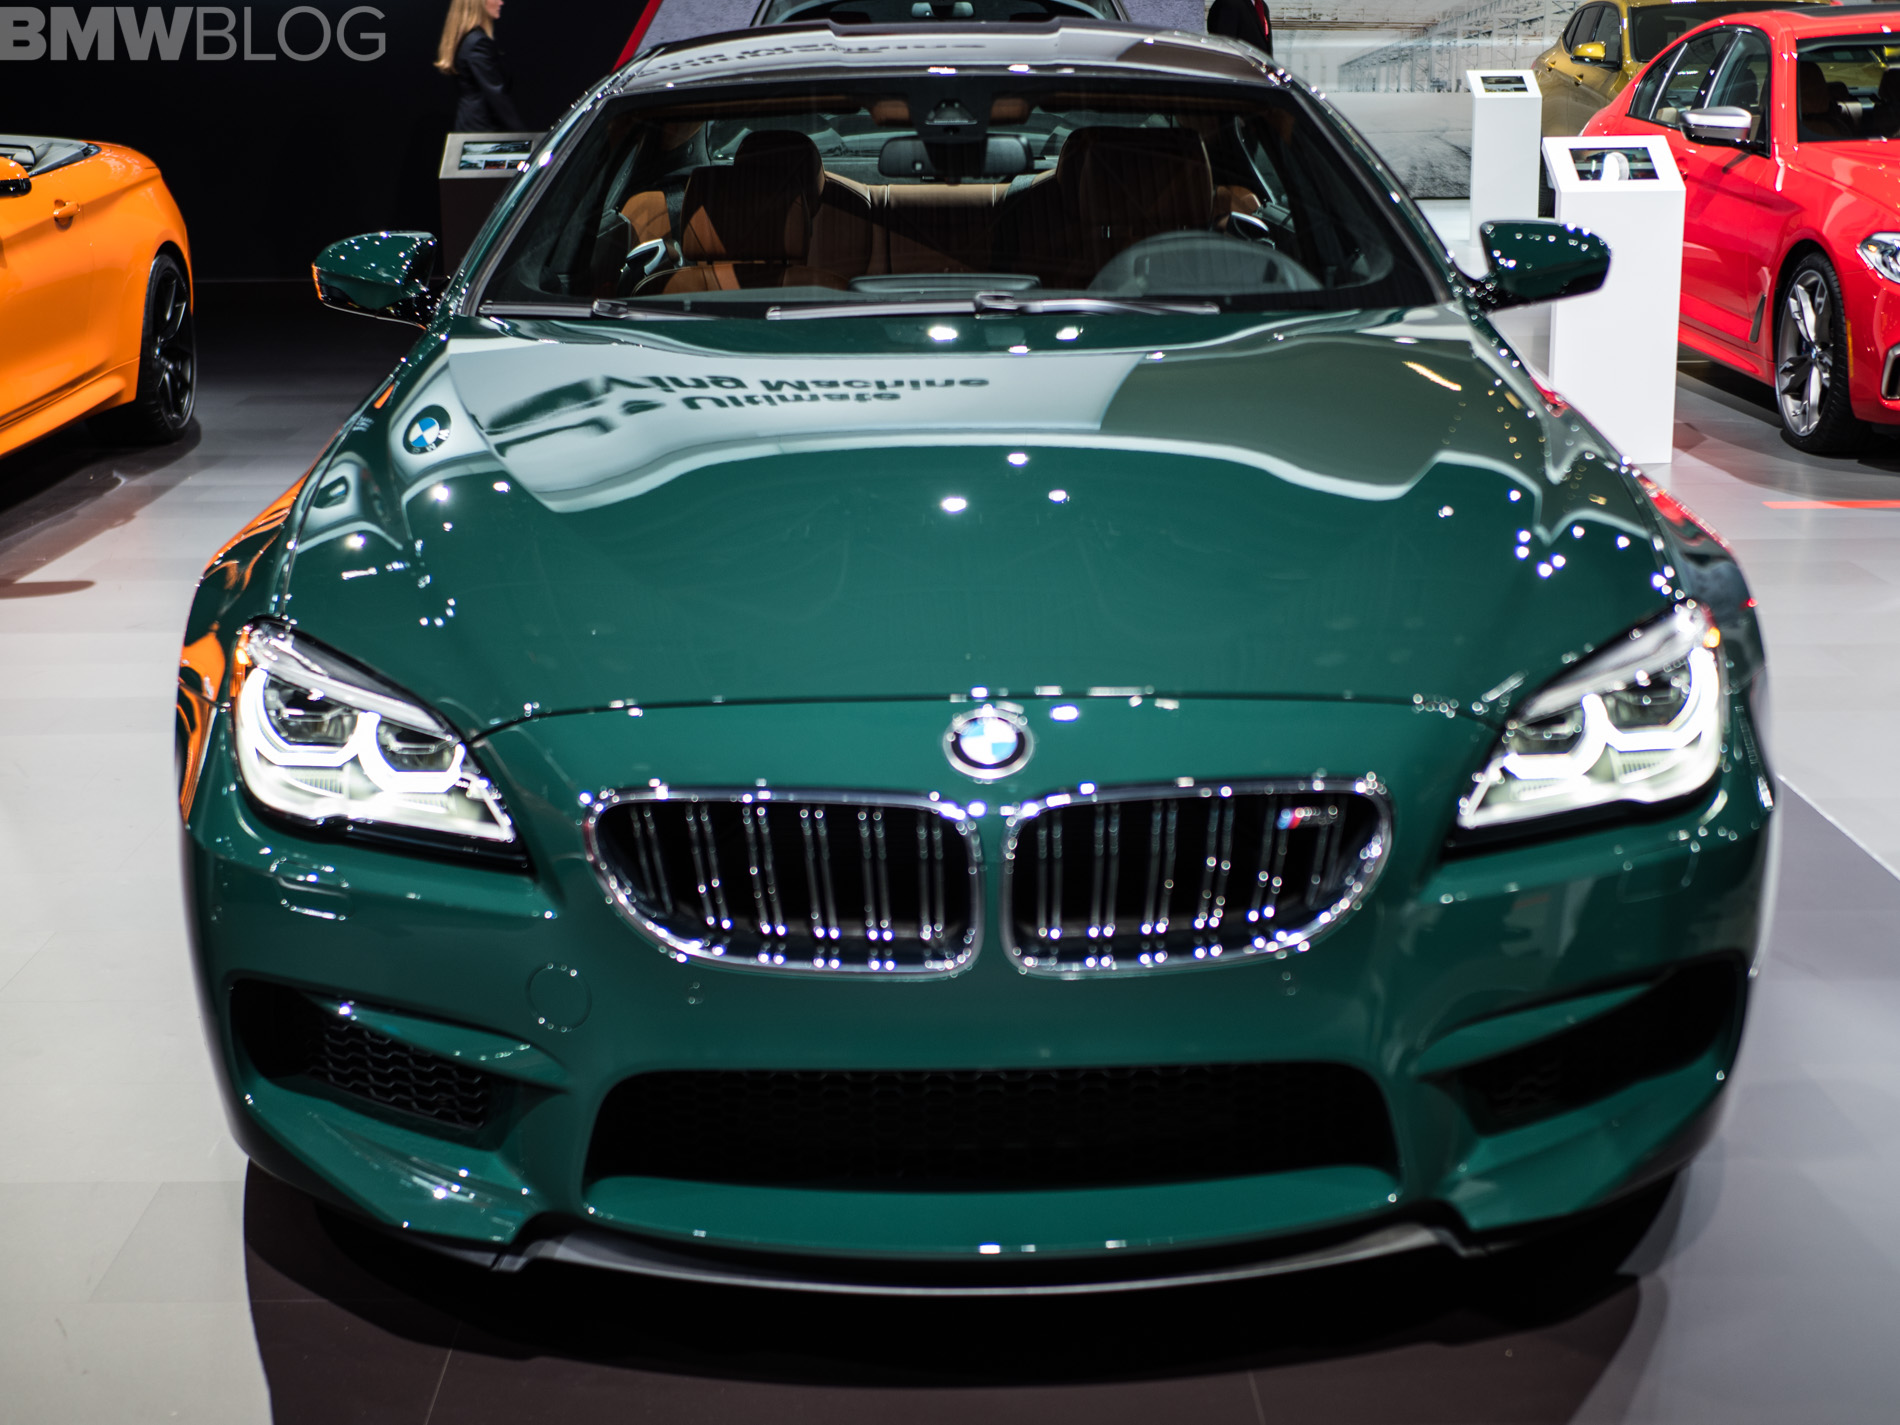 2018 NYIAS: BMW M6 Gran Coupe In British Racing Green